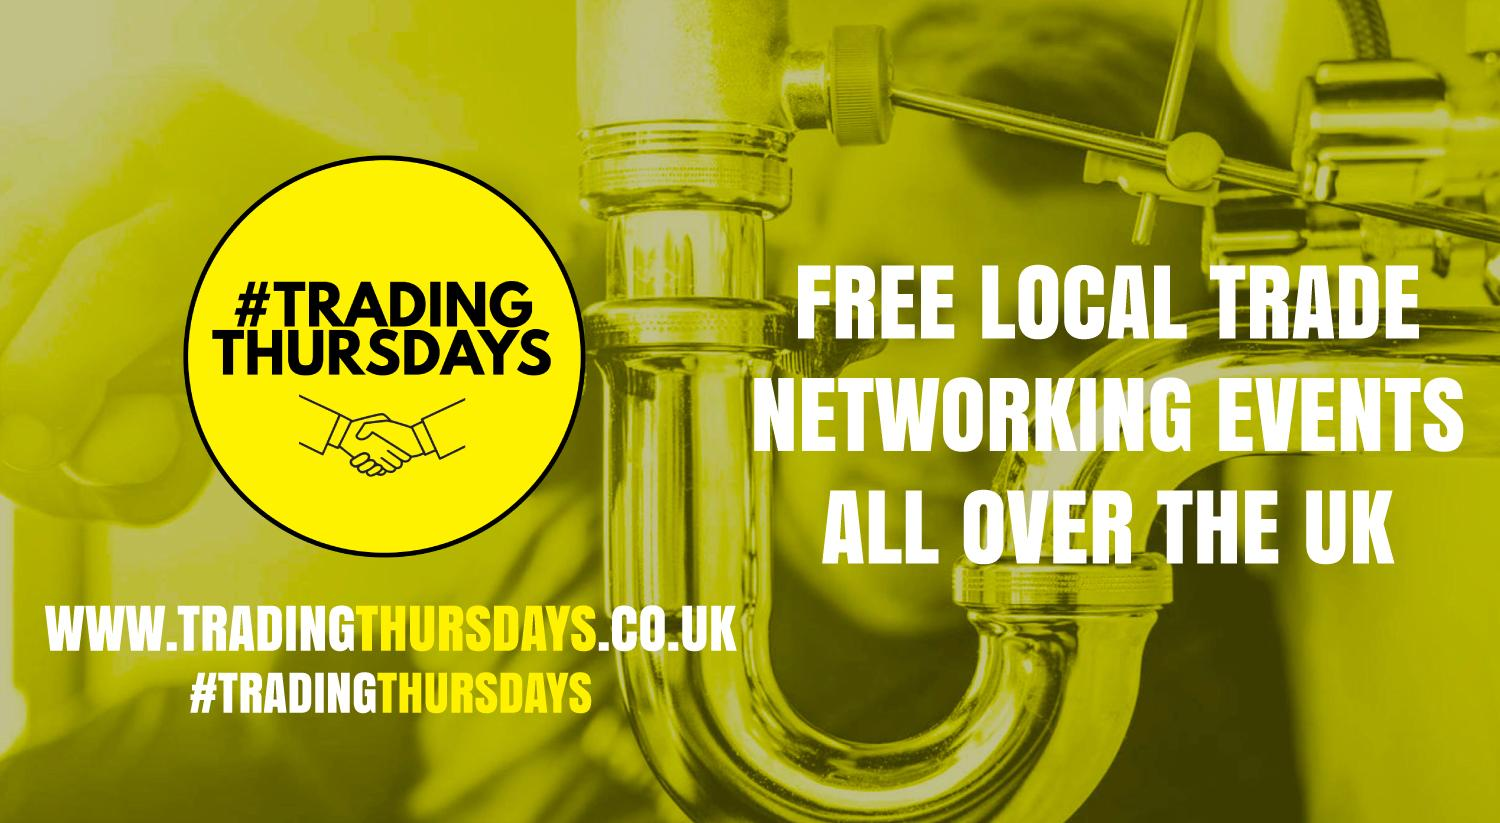 Trading Thursdays! Free networking event for traders in Bath